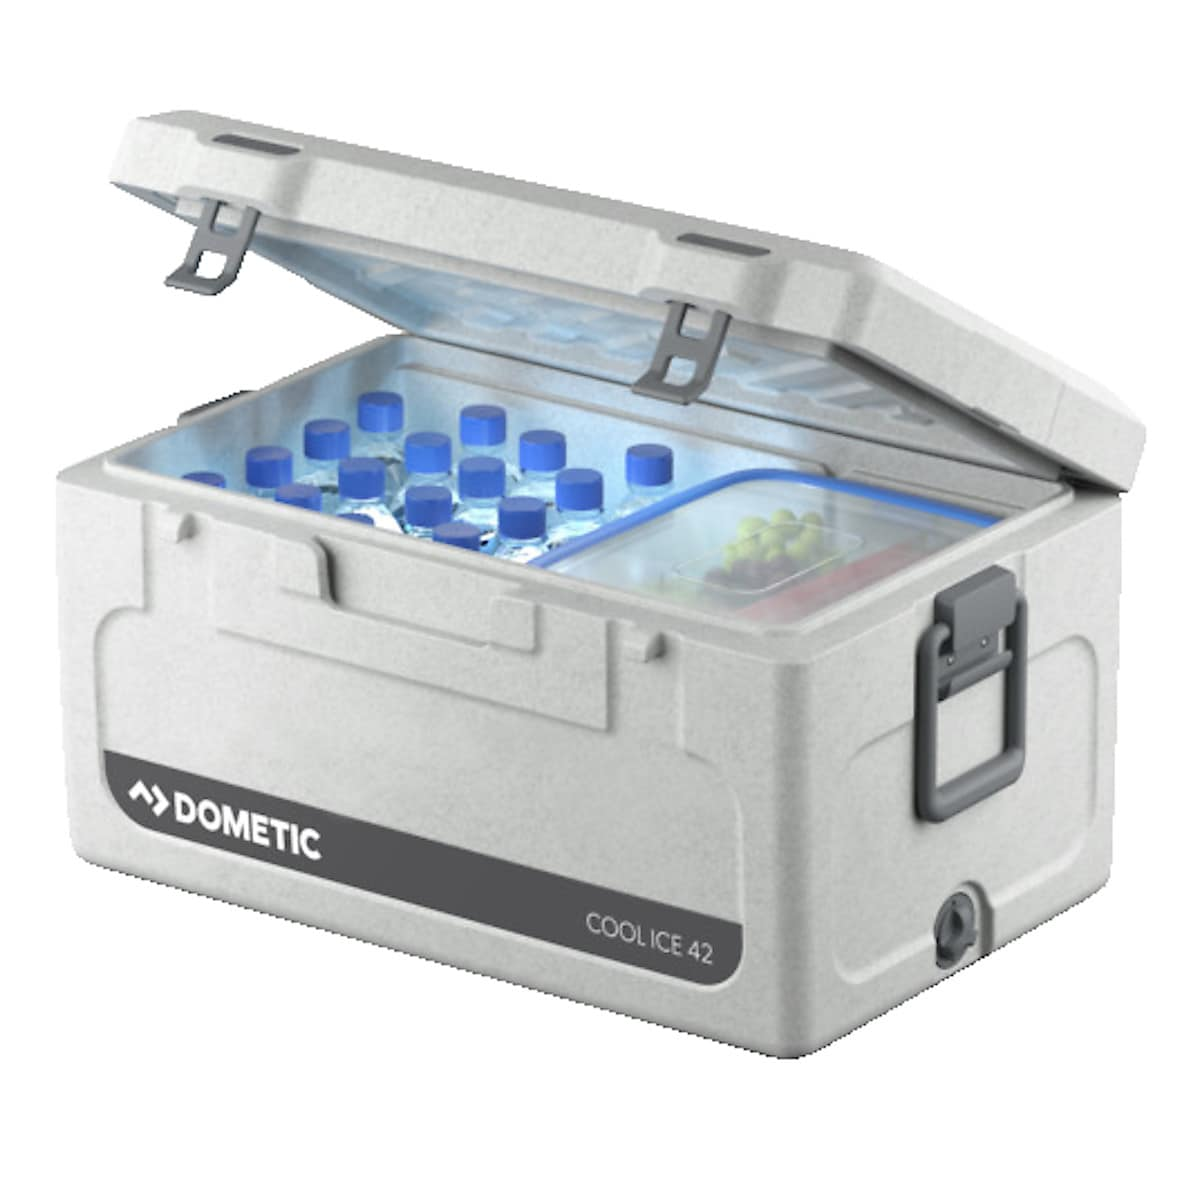 Dometic Cool Ice WCI 42 L Cooler Box